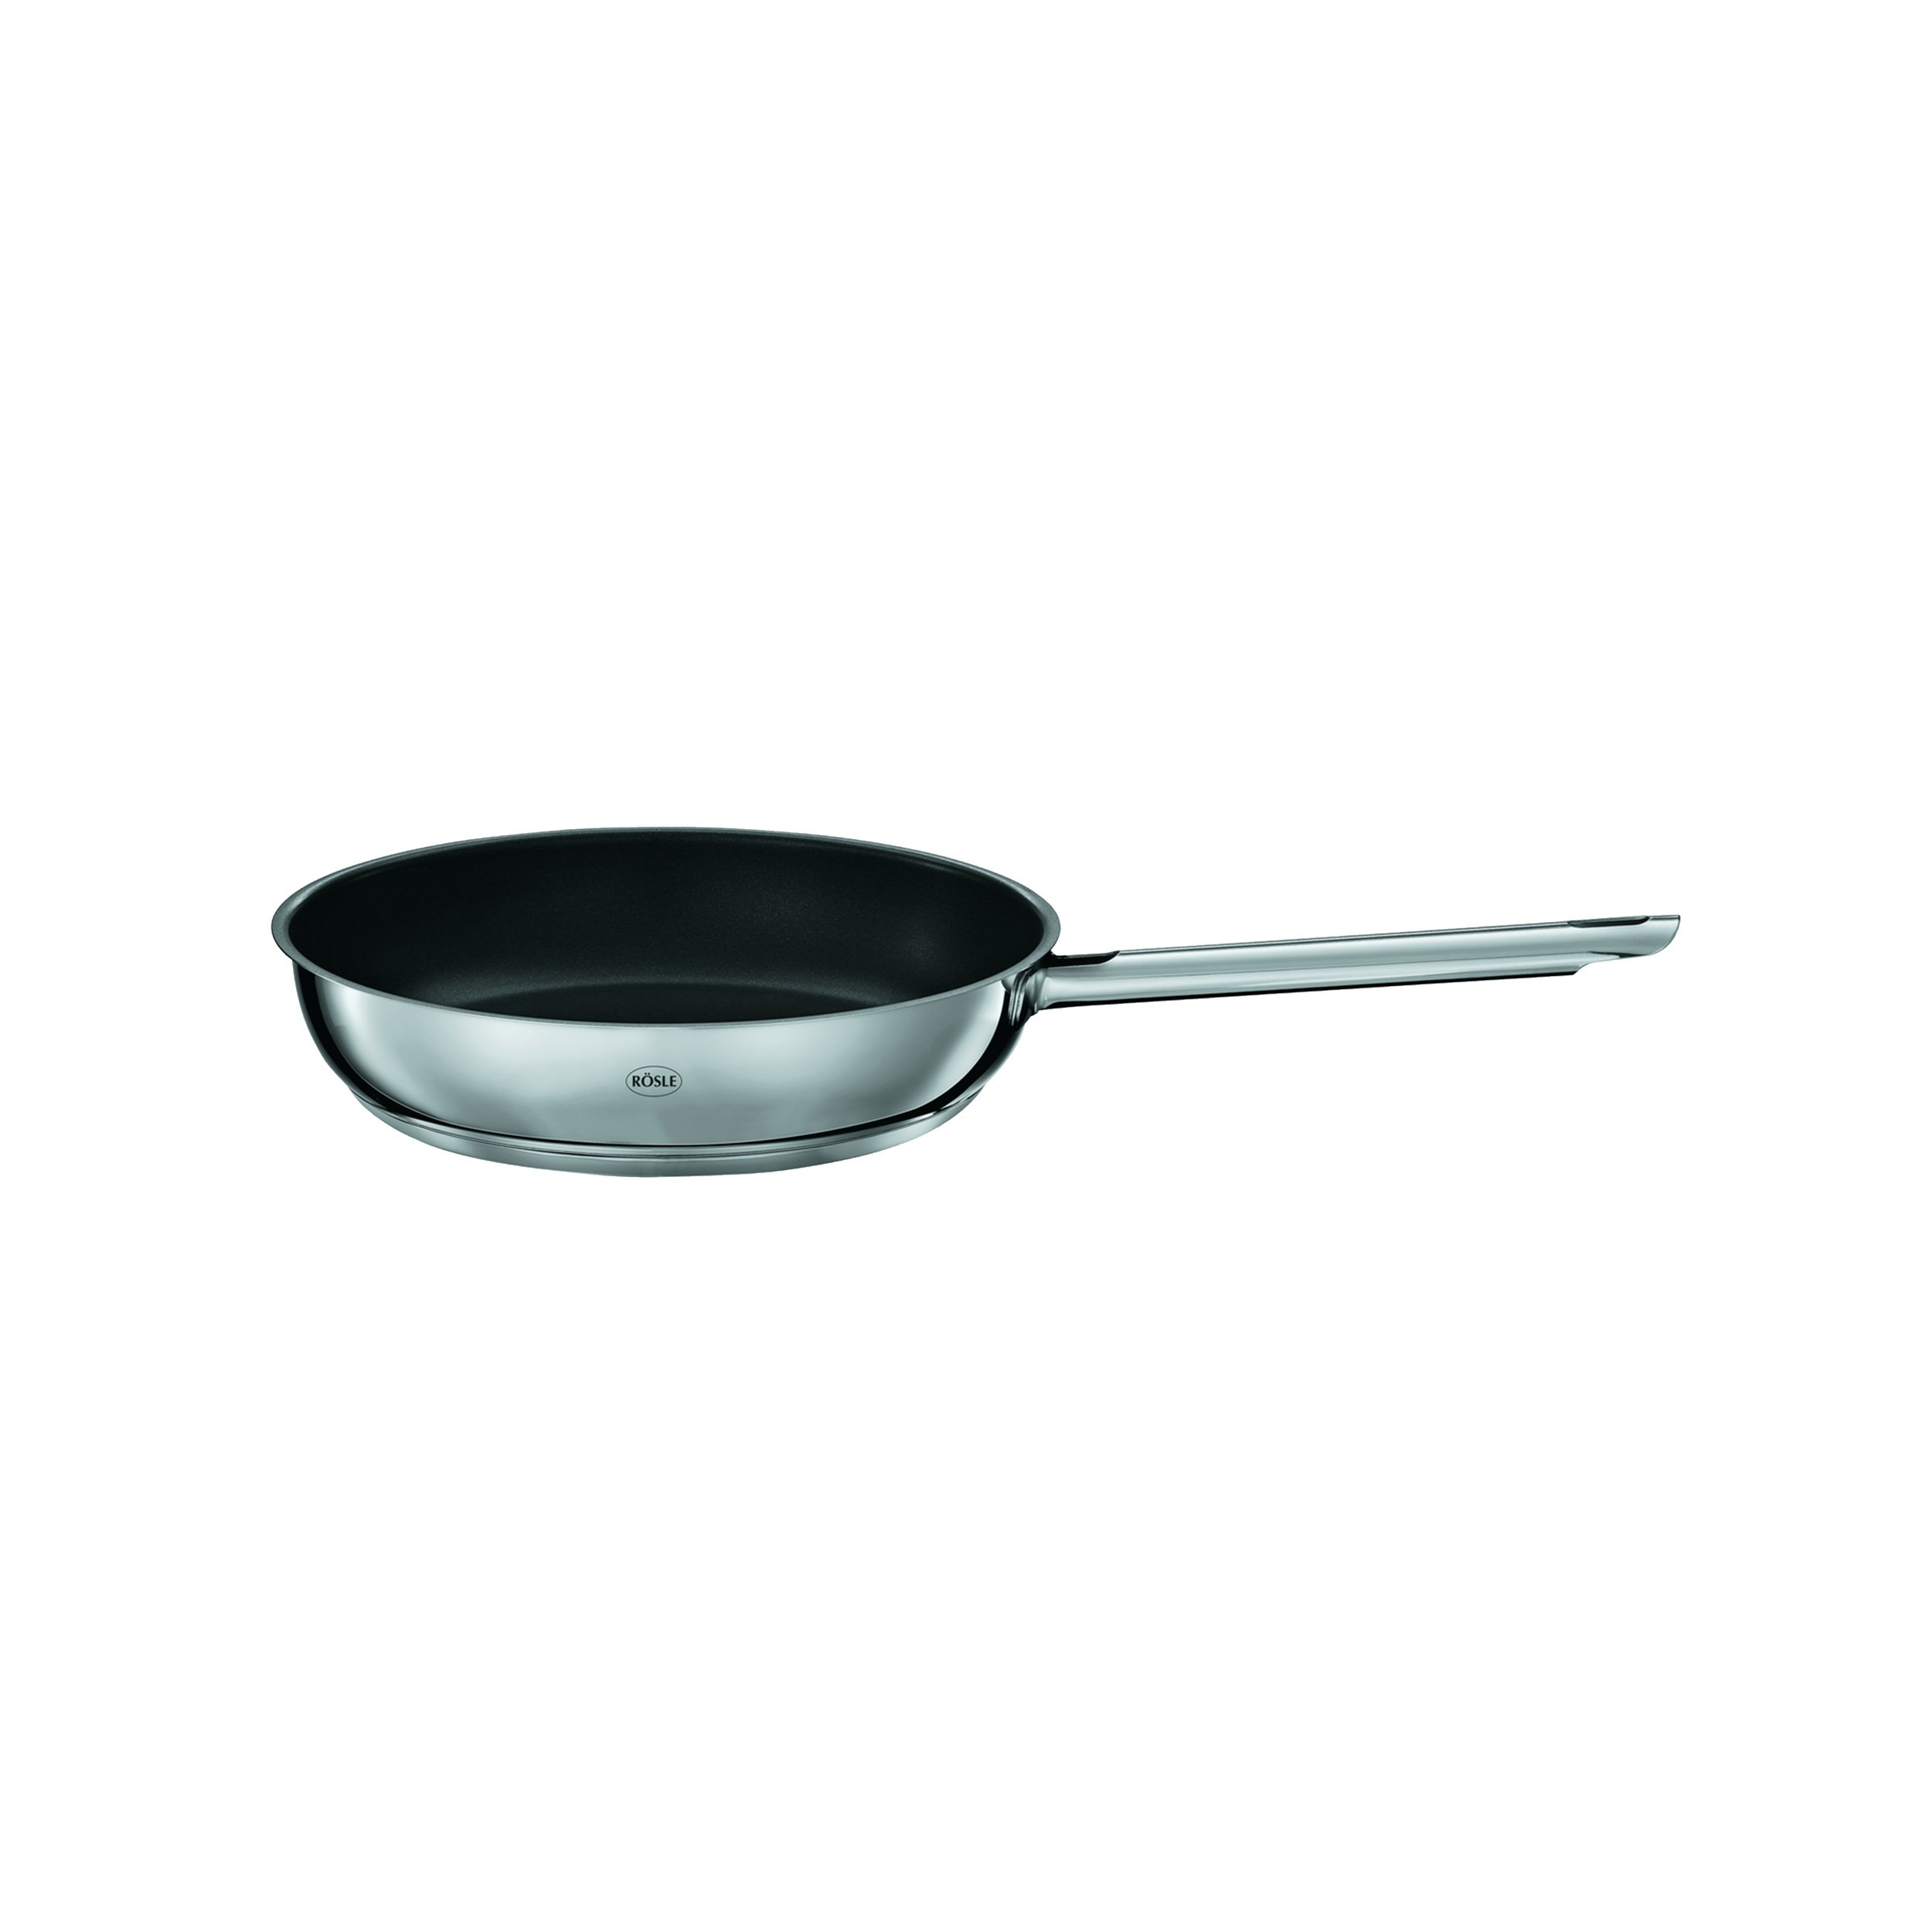 Rösle Elegance Frying Pan with Non-Stick Coating, Serving Pan, Stainless Steel, non-stick, 28 cm, 13212